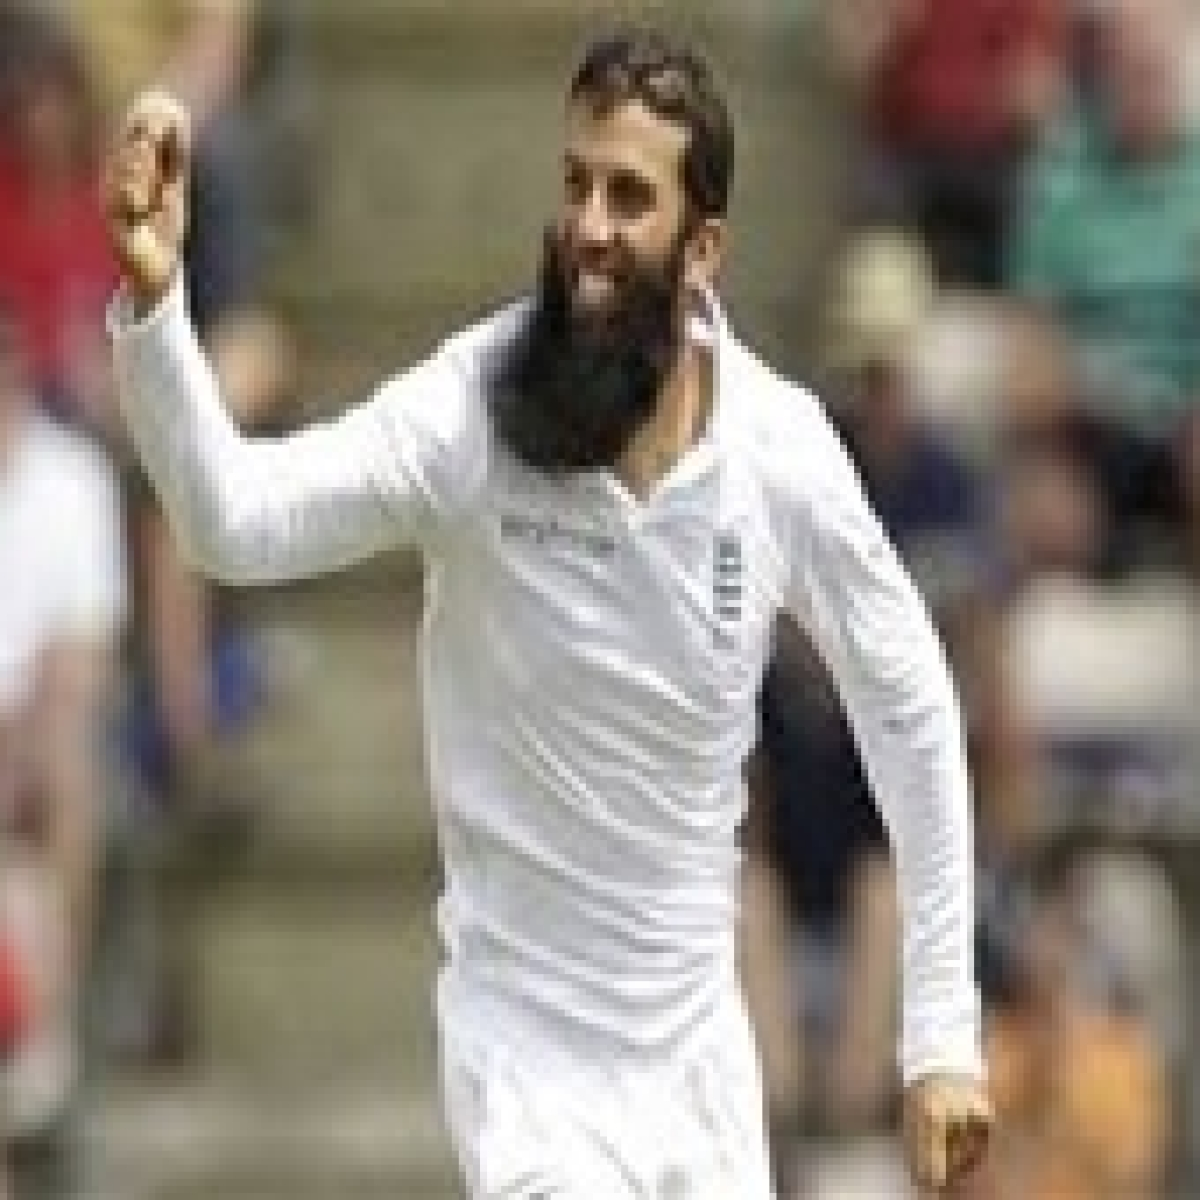 Moeen Ali sets sight on Virat's wicket in Birmingham